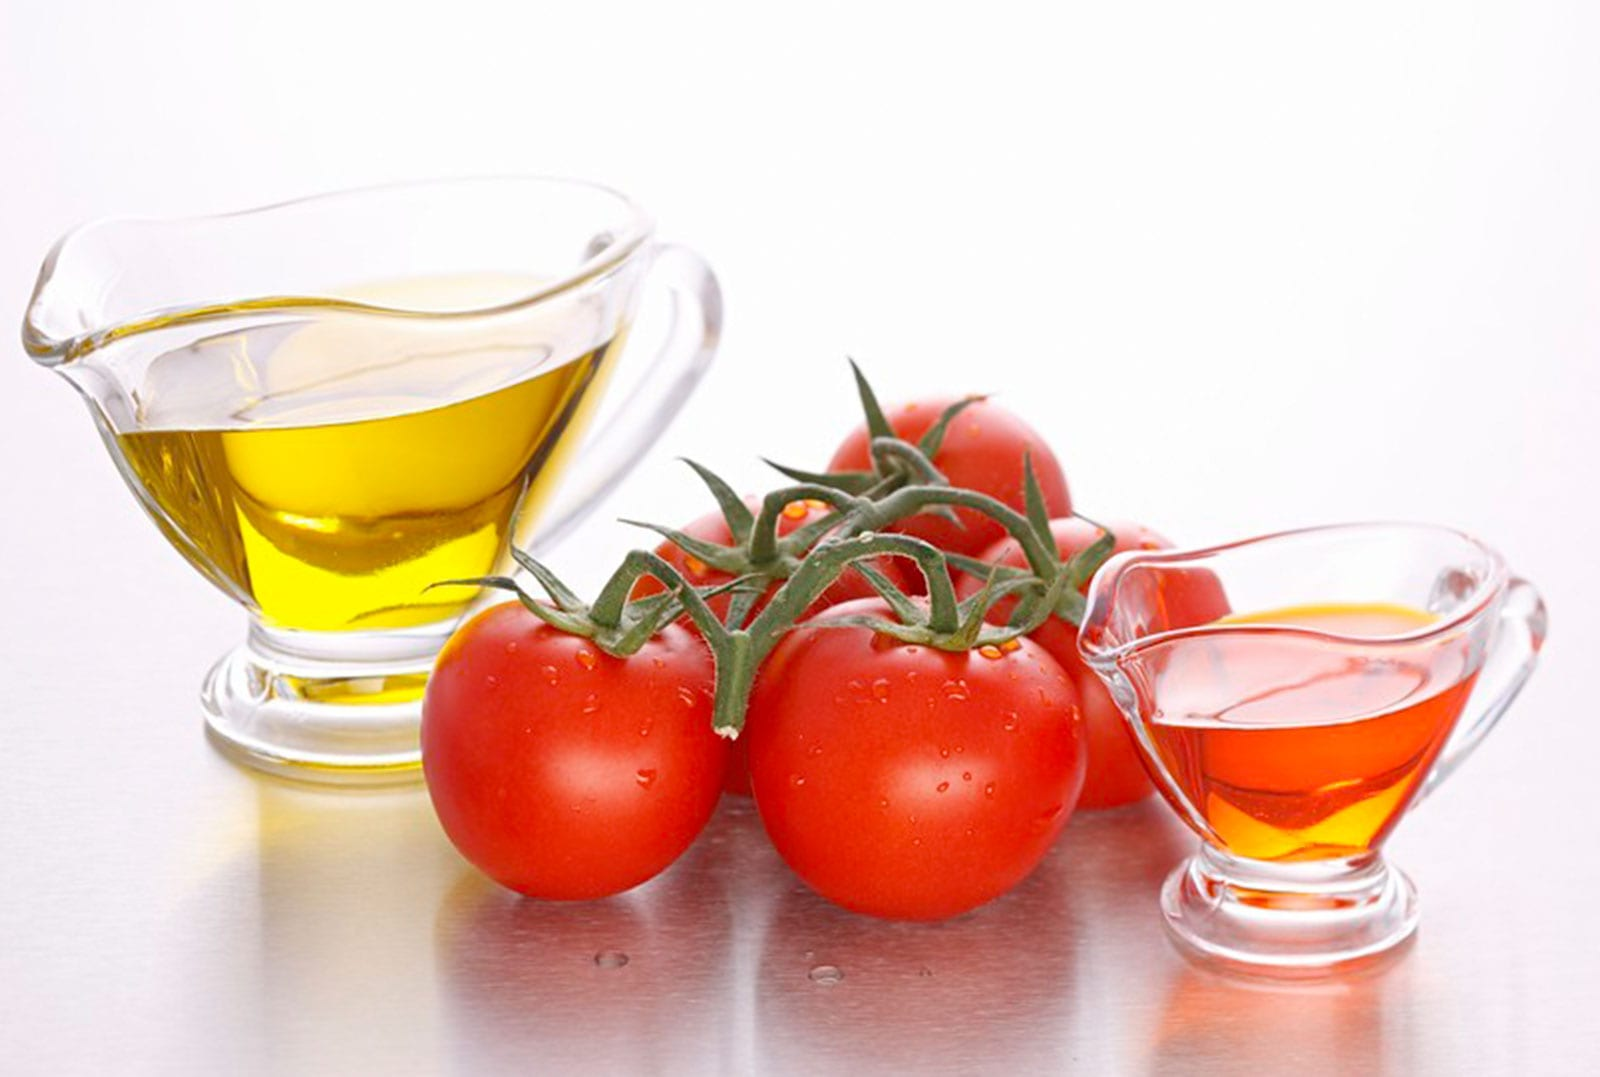 Lycopene Oil: The Perfect Match